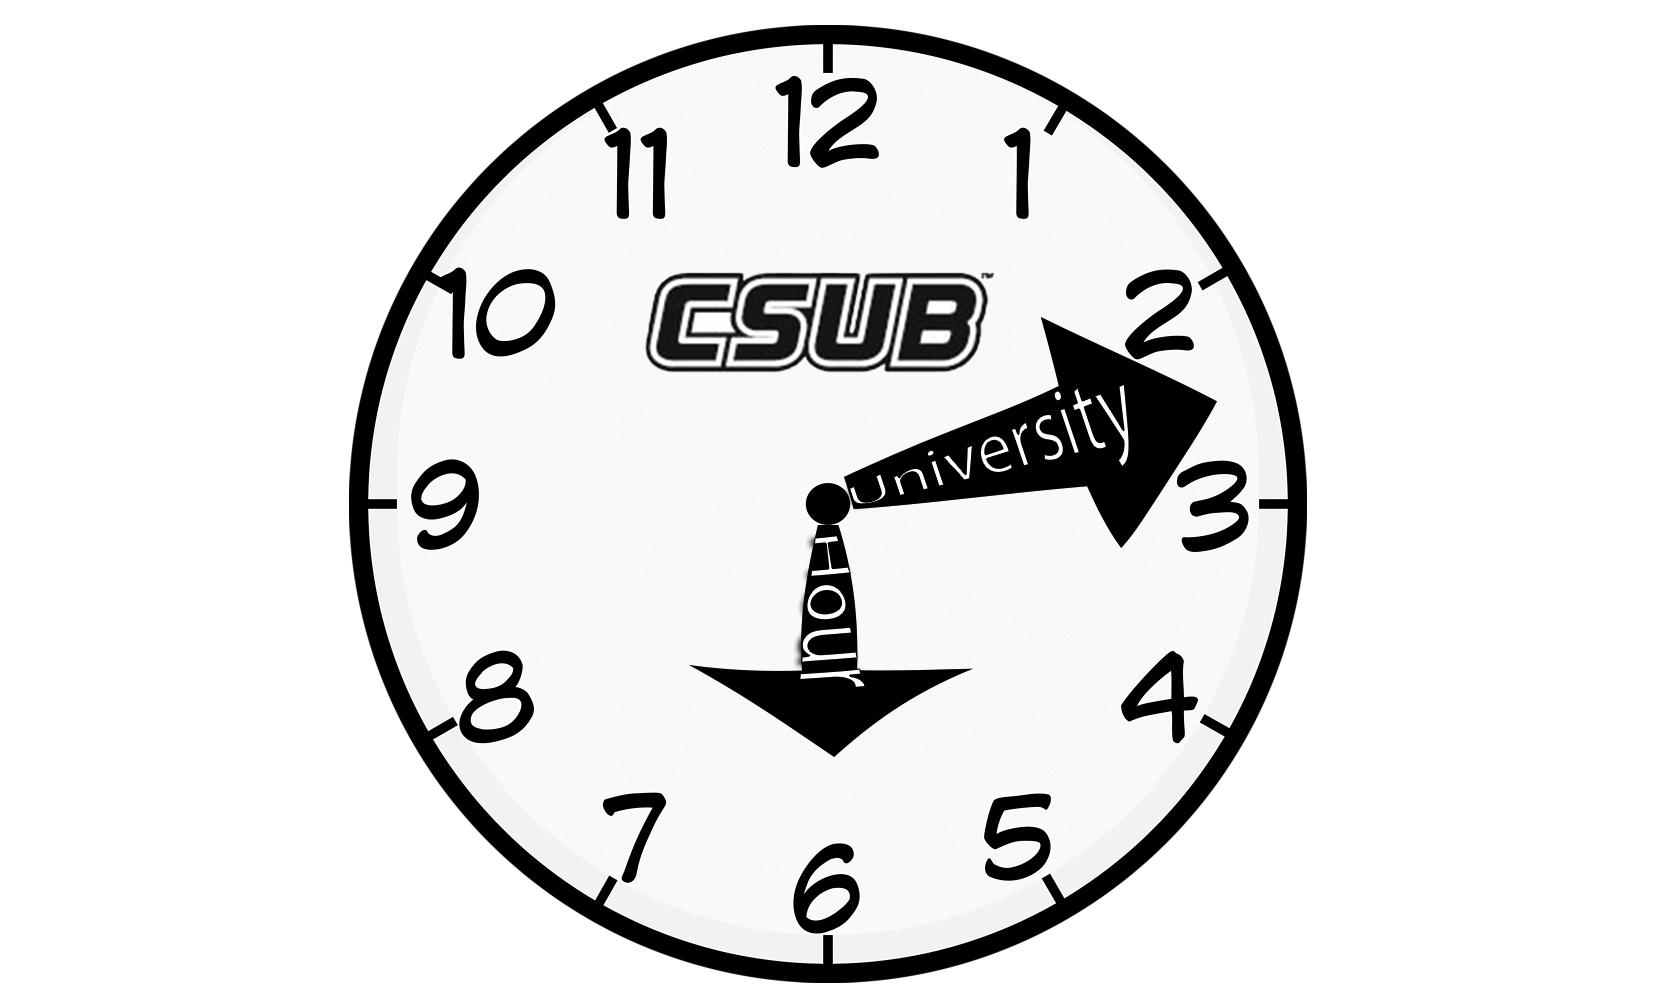 CSUB May Designate an Hour Specifically for Student and Staff Interaction